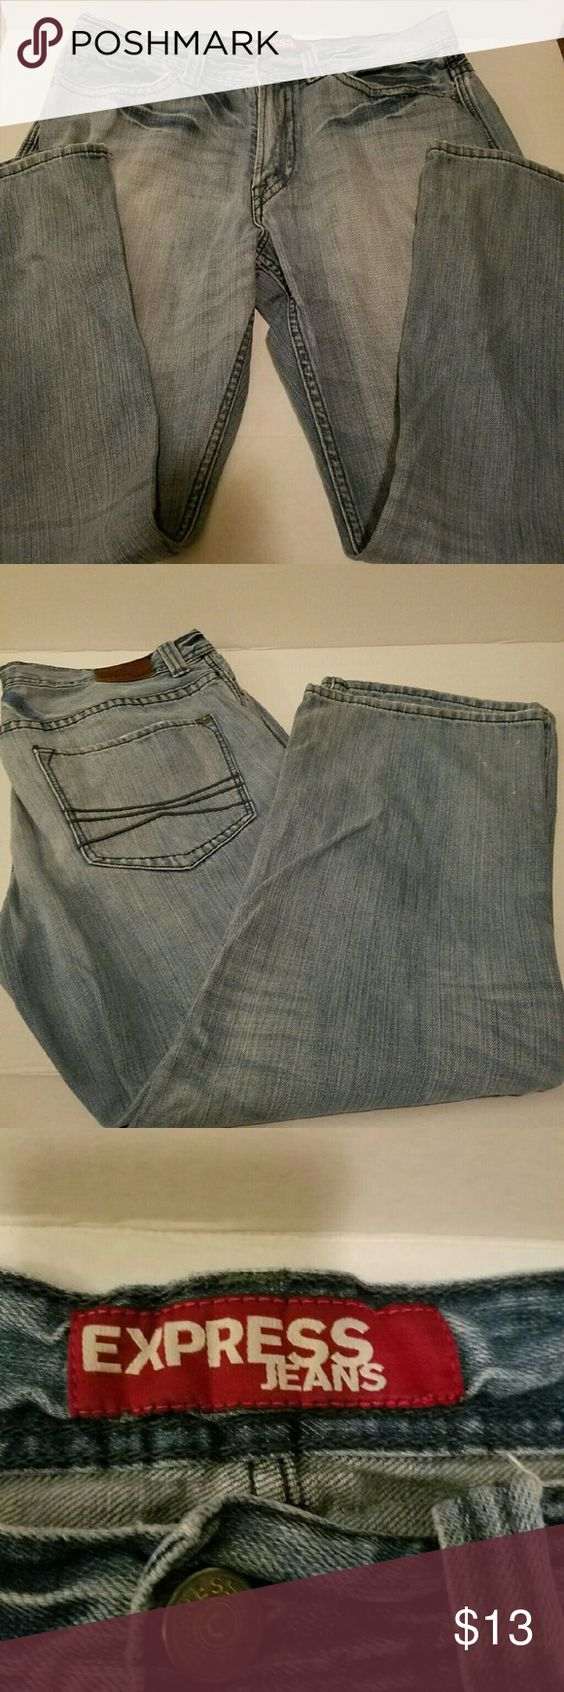 Express men jeans Preowned, good condition,  size 36 x 30 Express Jeans